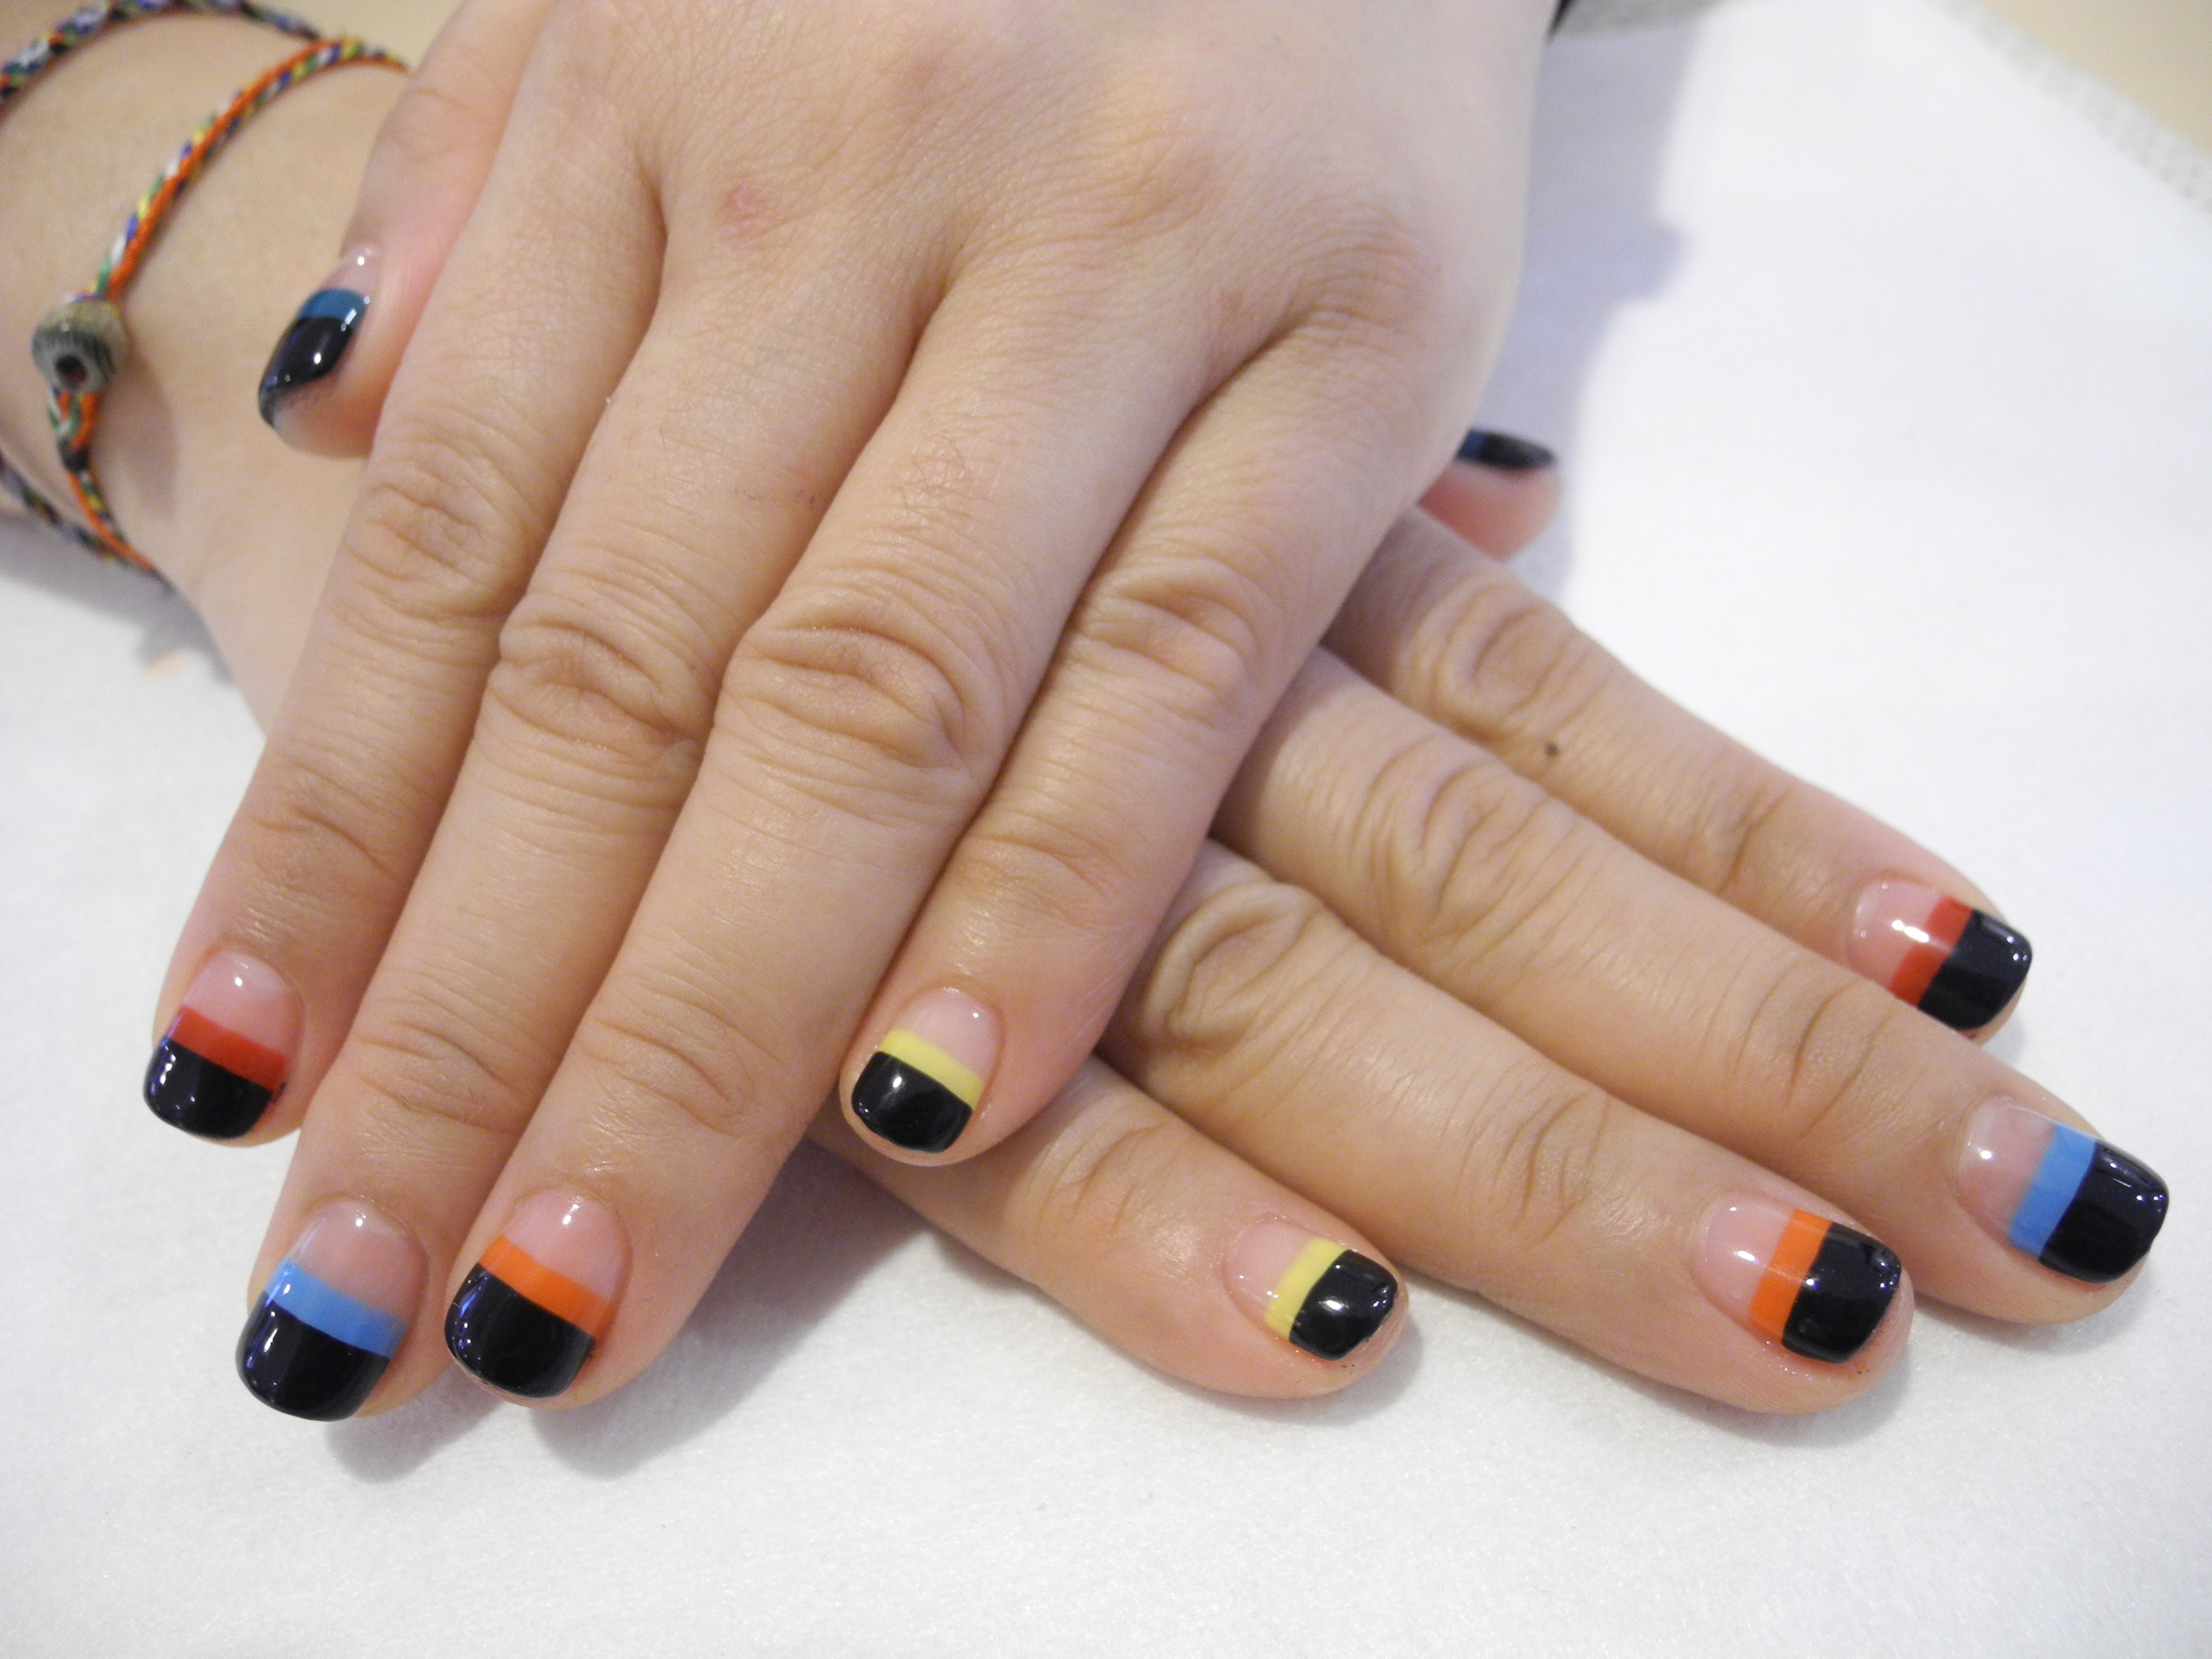 Rainbow nails opi premium manicure and pedicure services nail nail art gallery prinsesfo Image collections